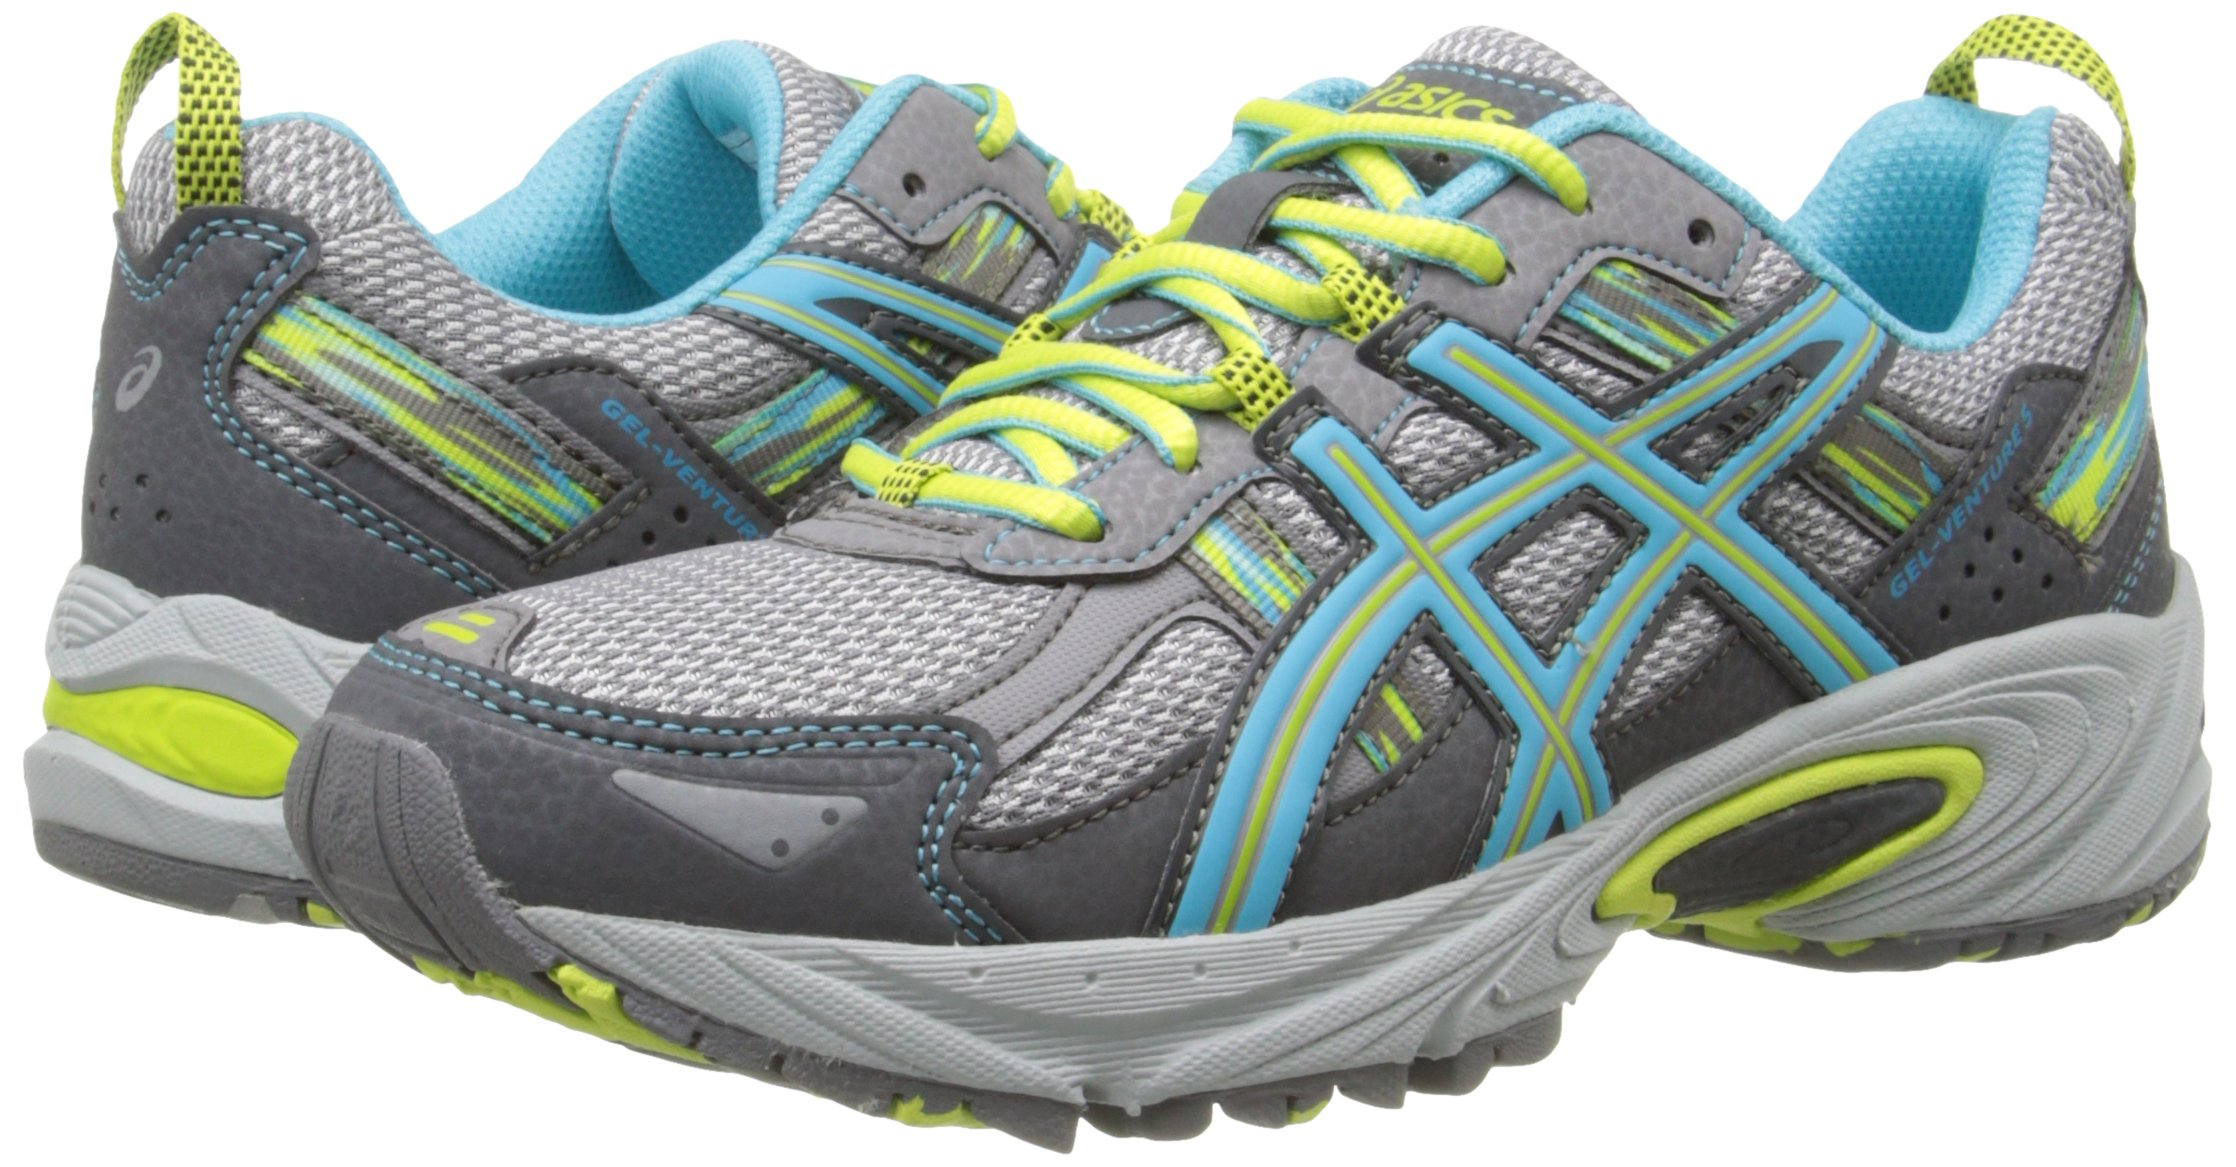 ASICS Women's Gel-Venture 5 Running Shoe, Silver Grey/Turquoise/Lime Punch, 6 M US by ASICS (Image #6)